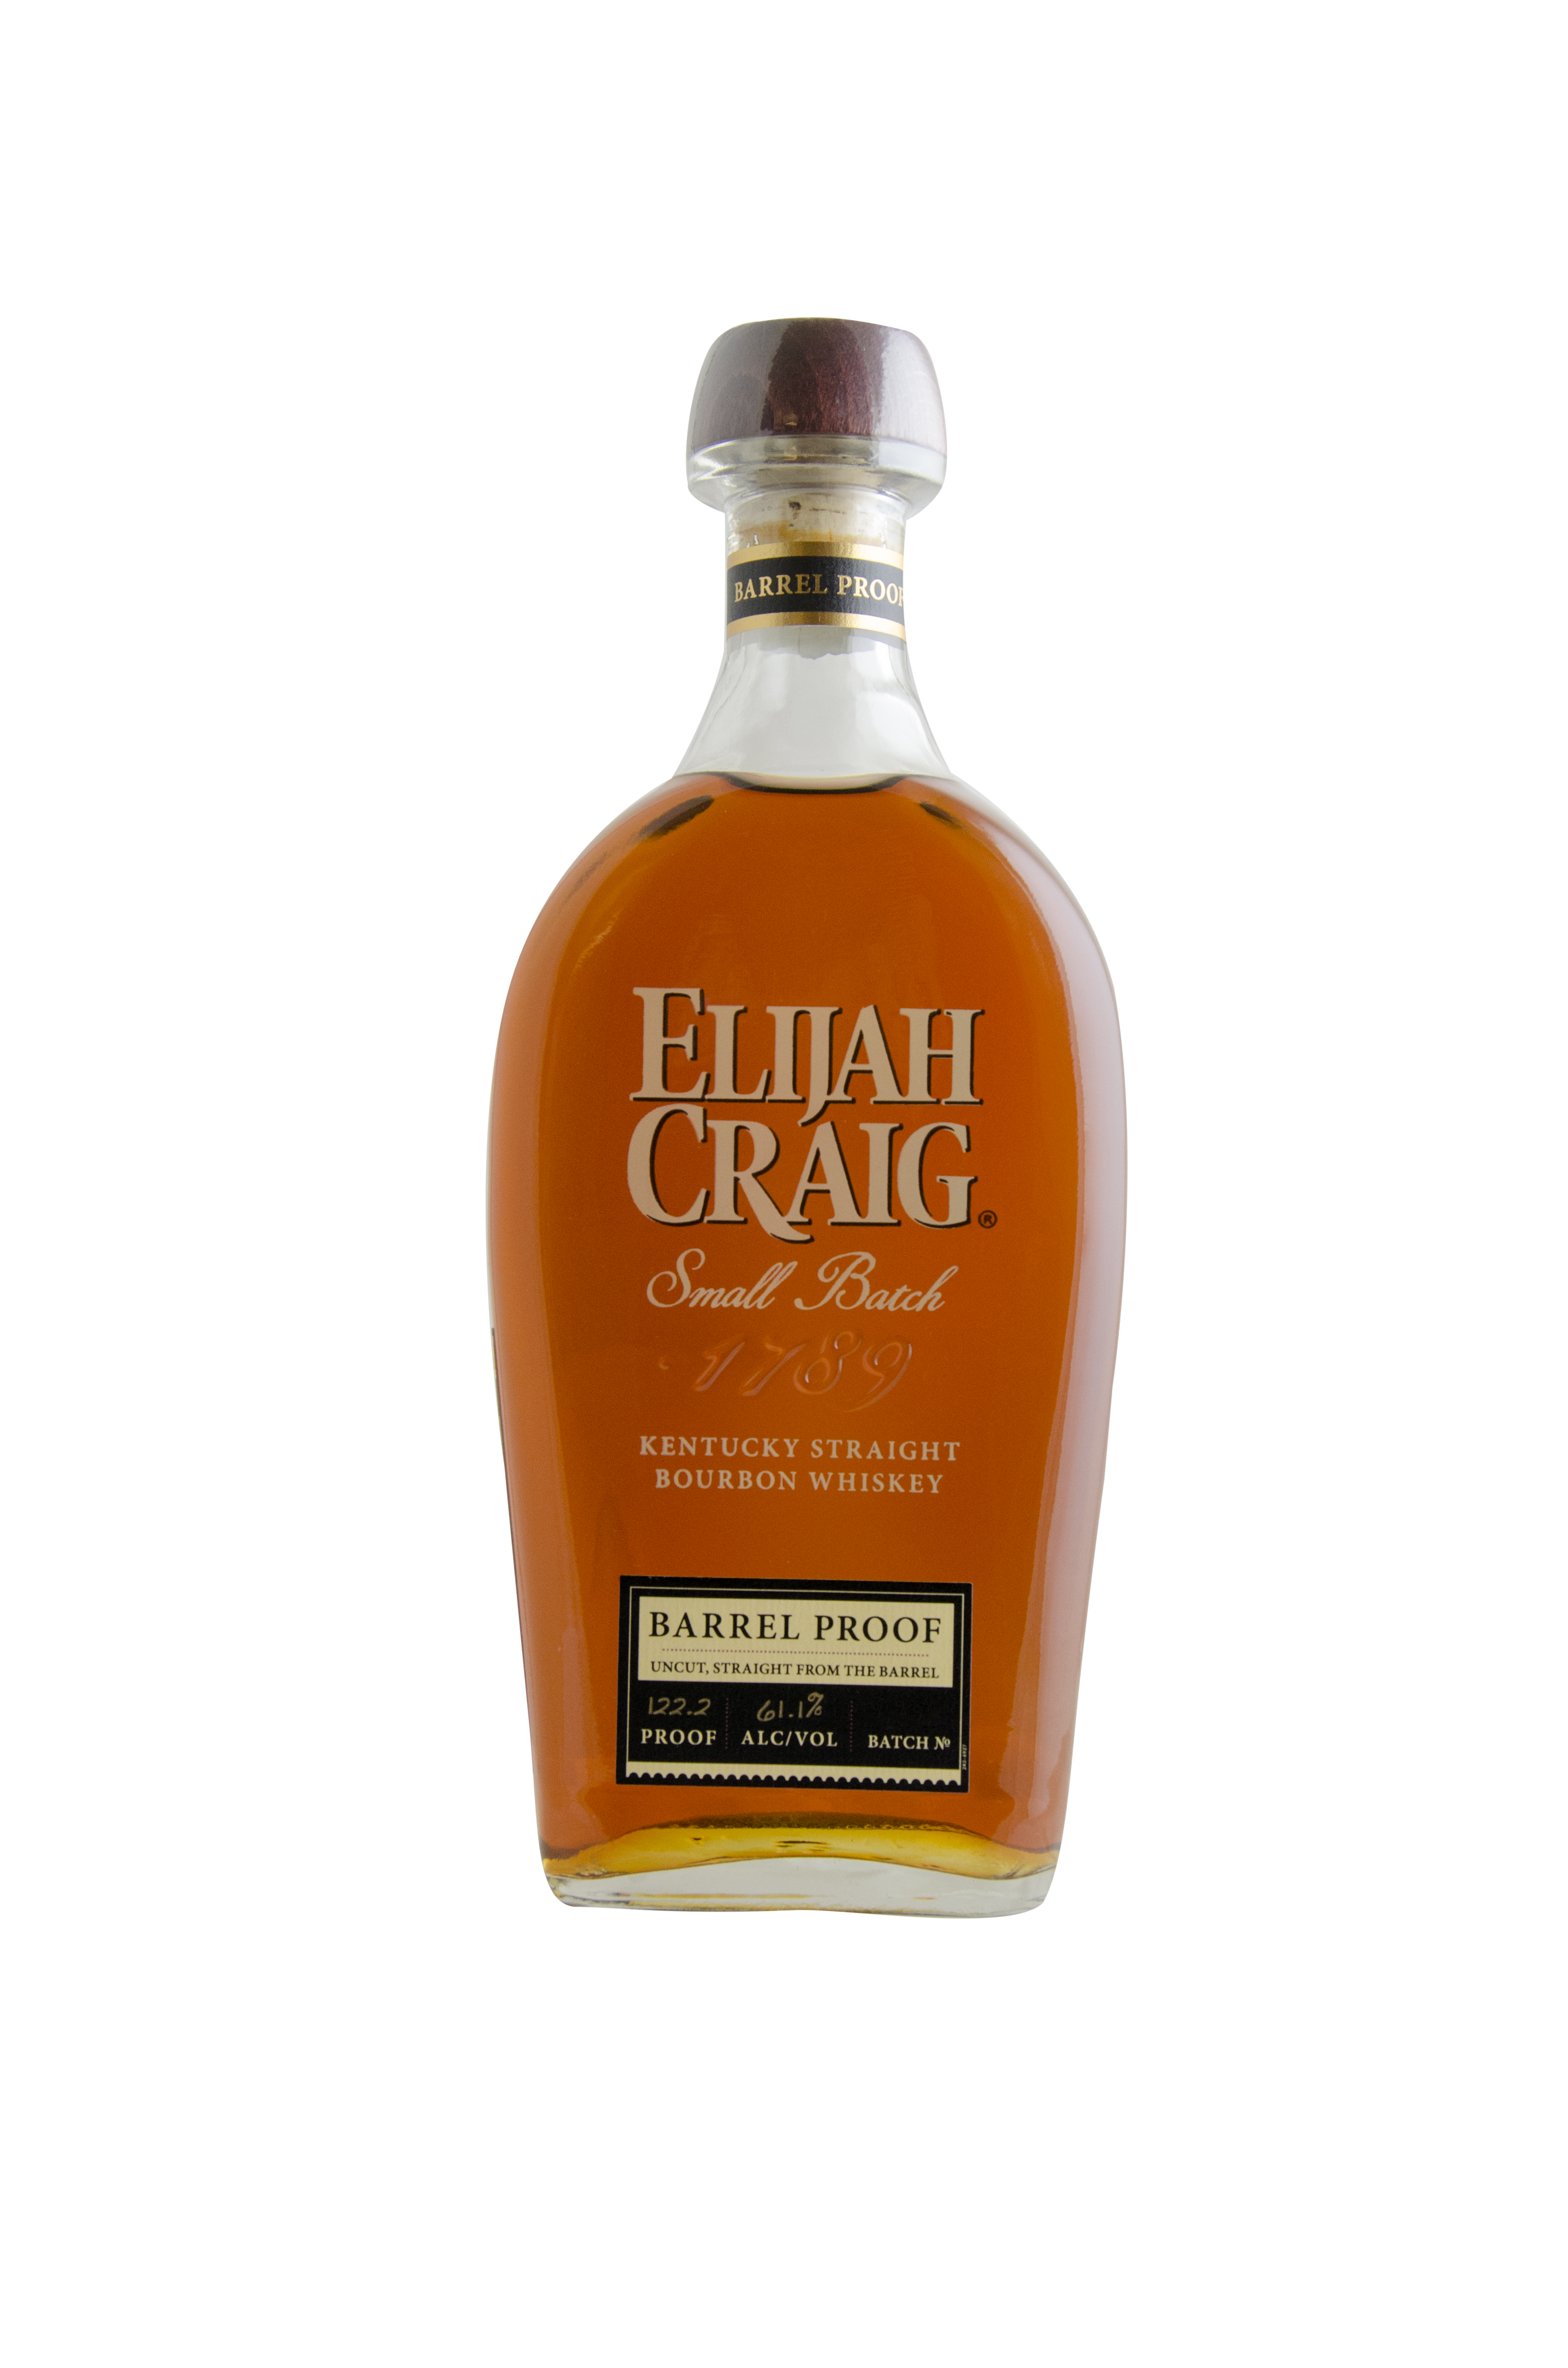 Elijah Craig 12 Yr. Barrel Proof Bourbon